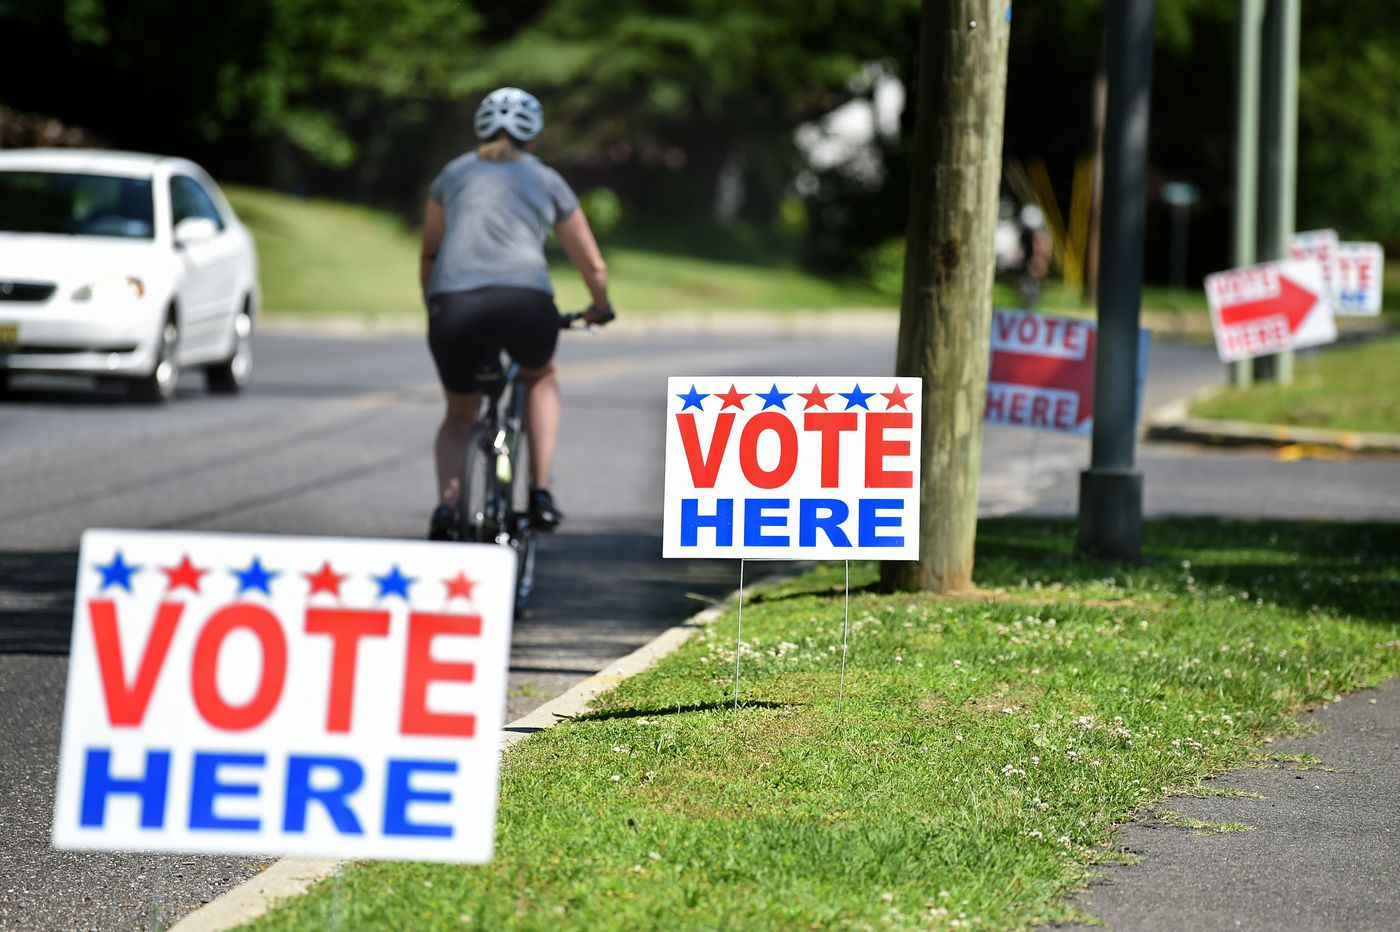 N.J. lawmakers approve fix to absentee voter list after leaving off 172,000 people